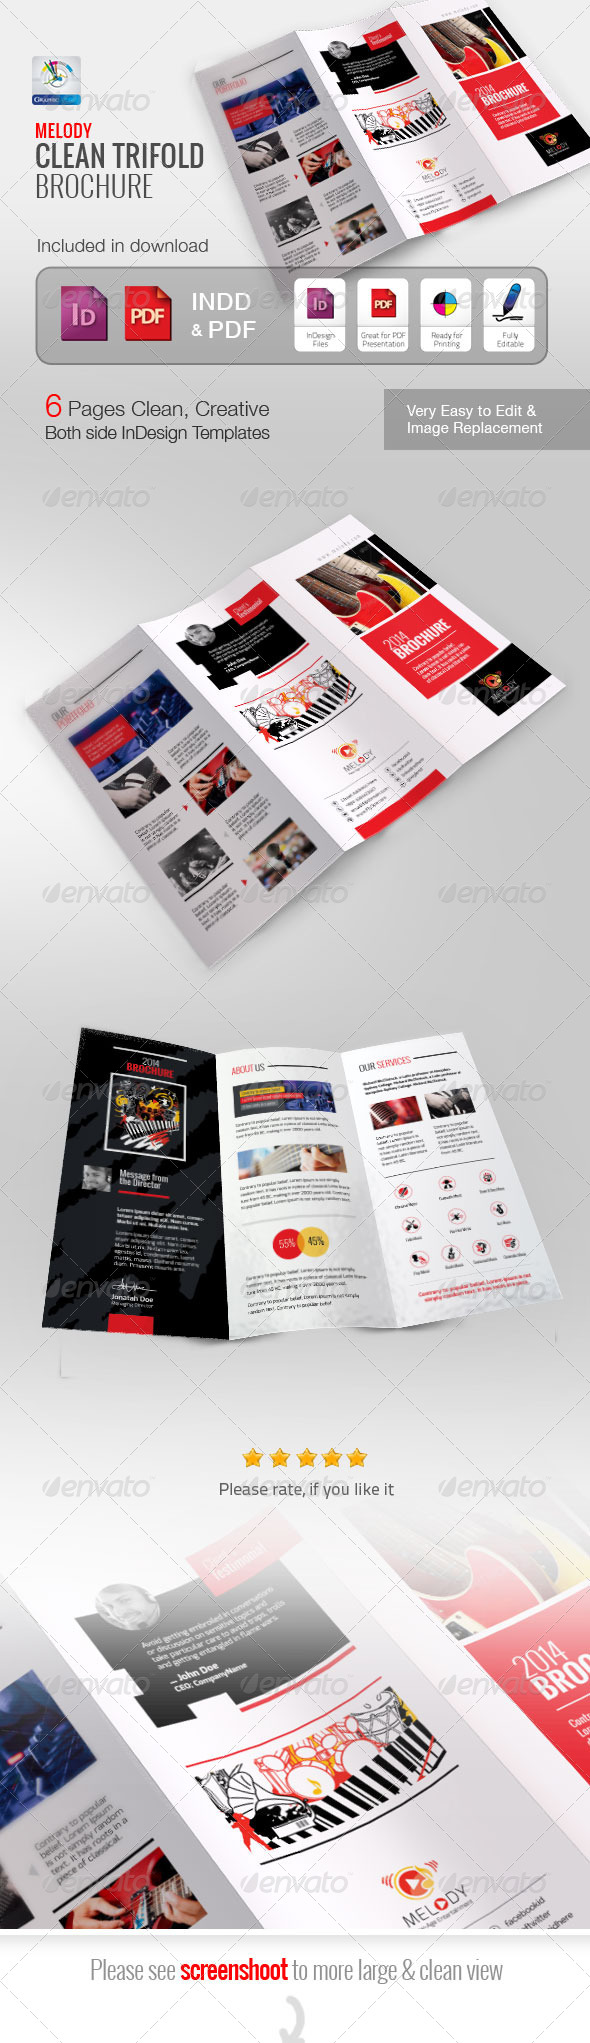 Melody Clean Trifold Brochure